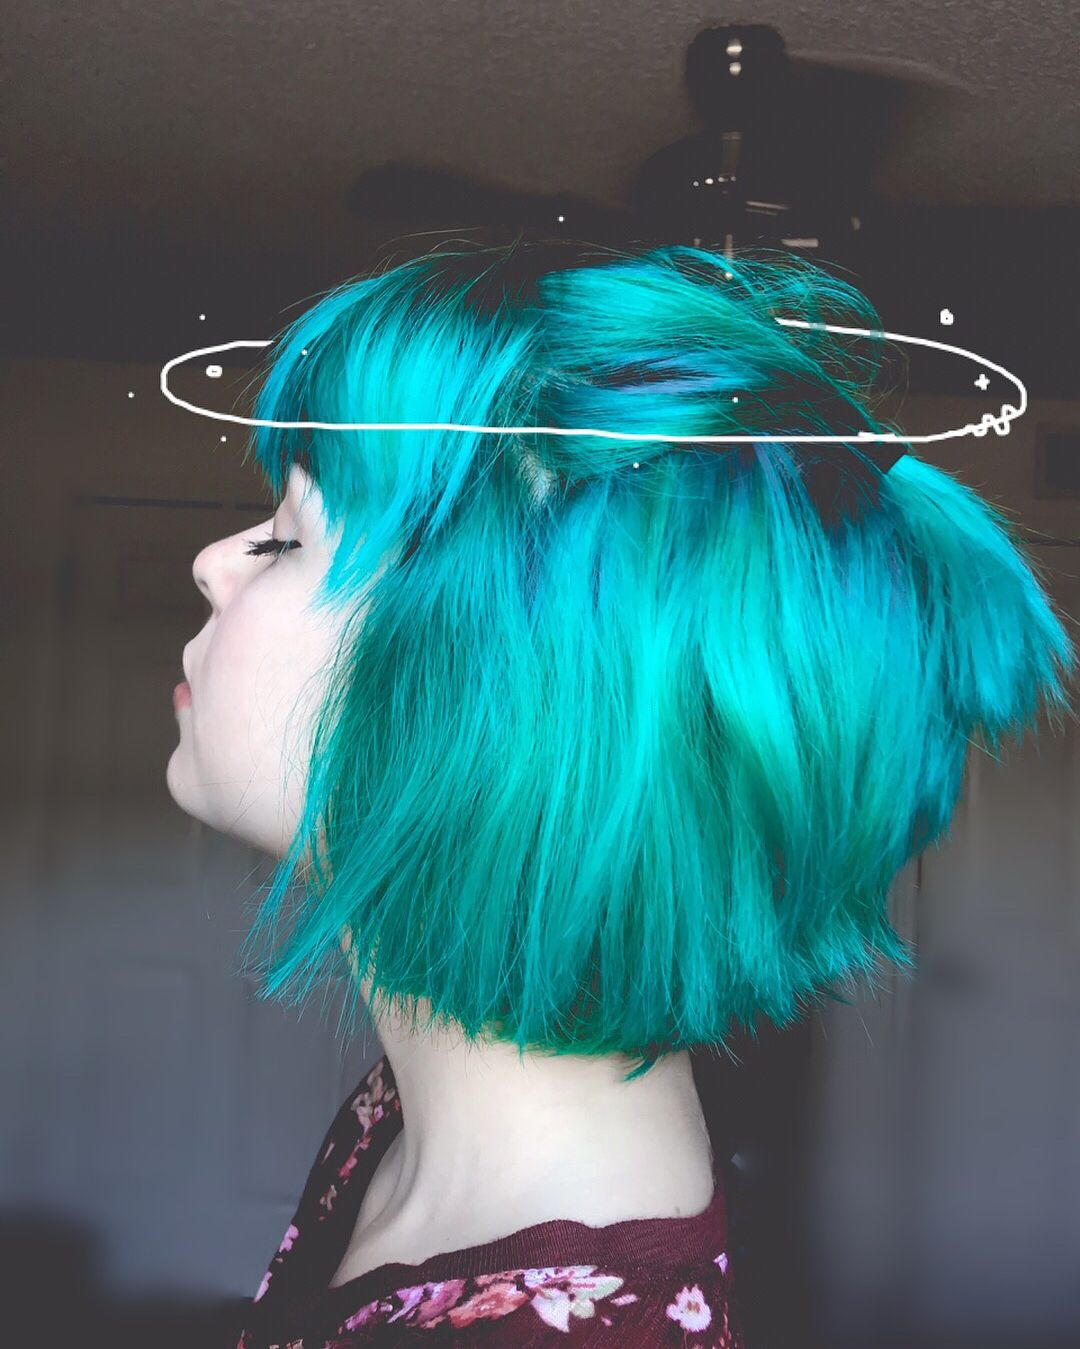 Pin by toclose butfar on the weird stuff pinterest turquoise